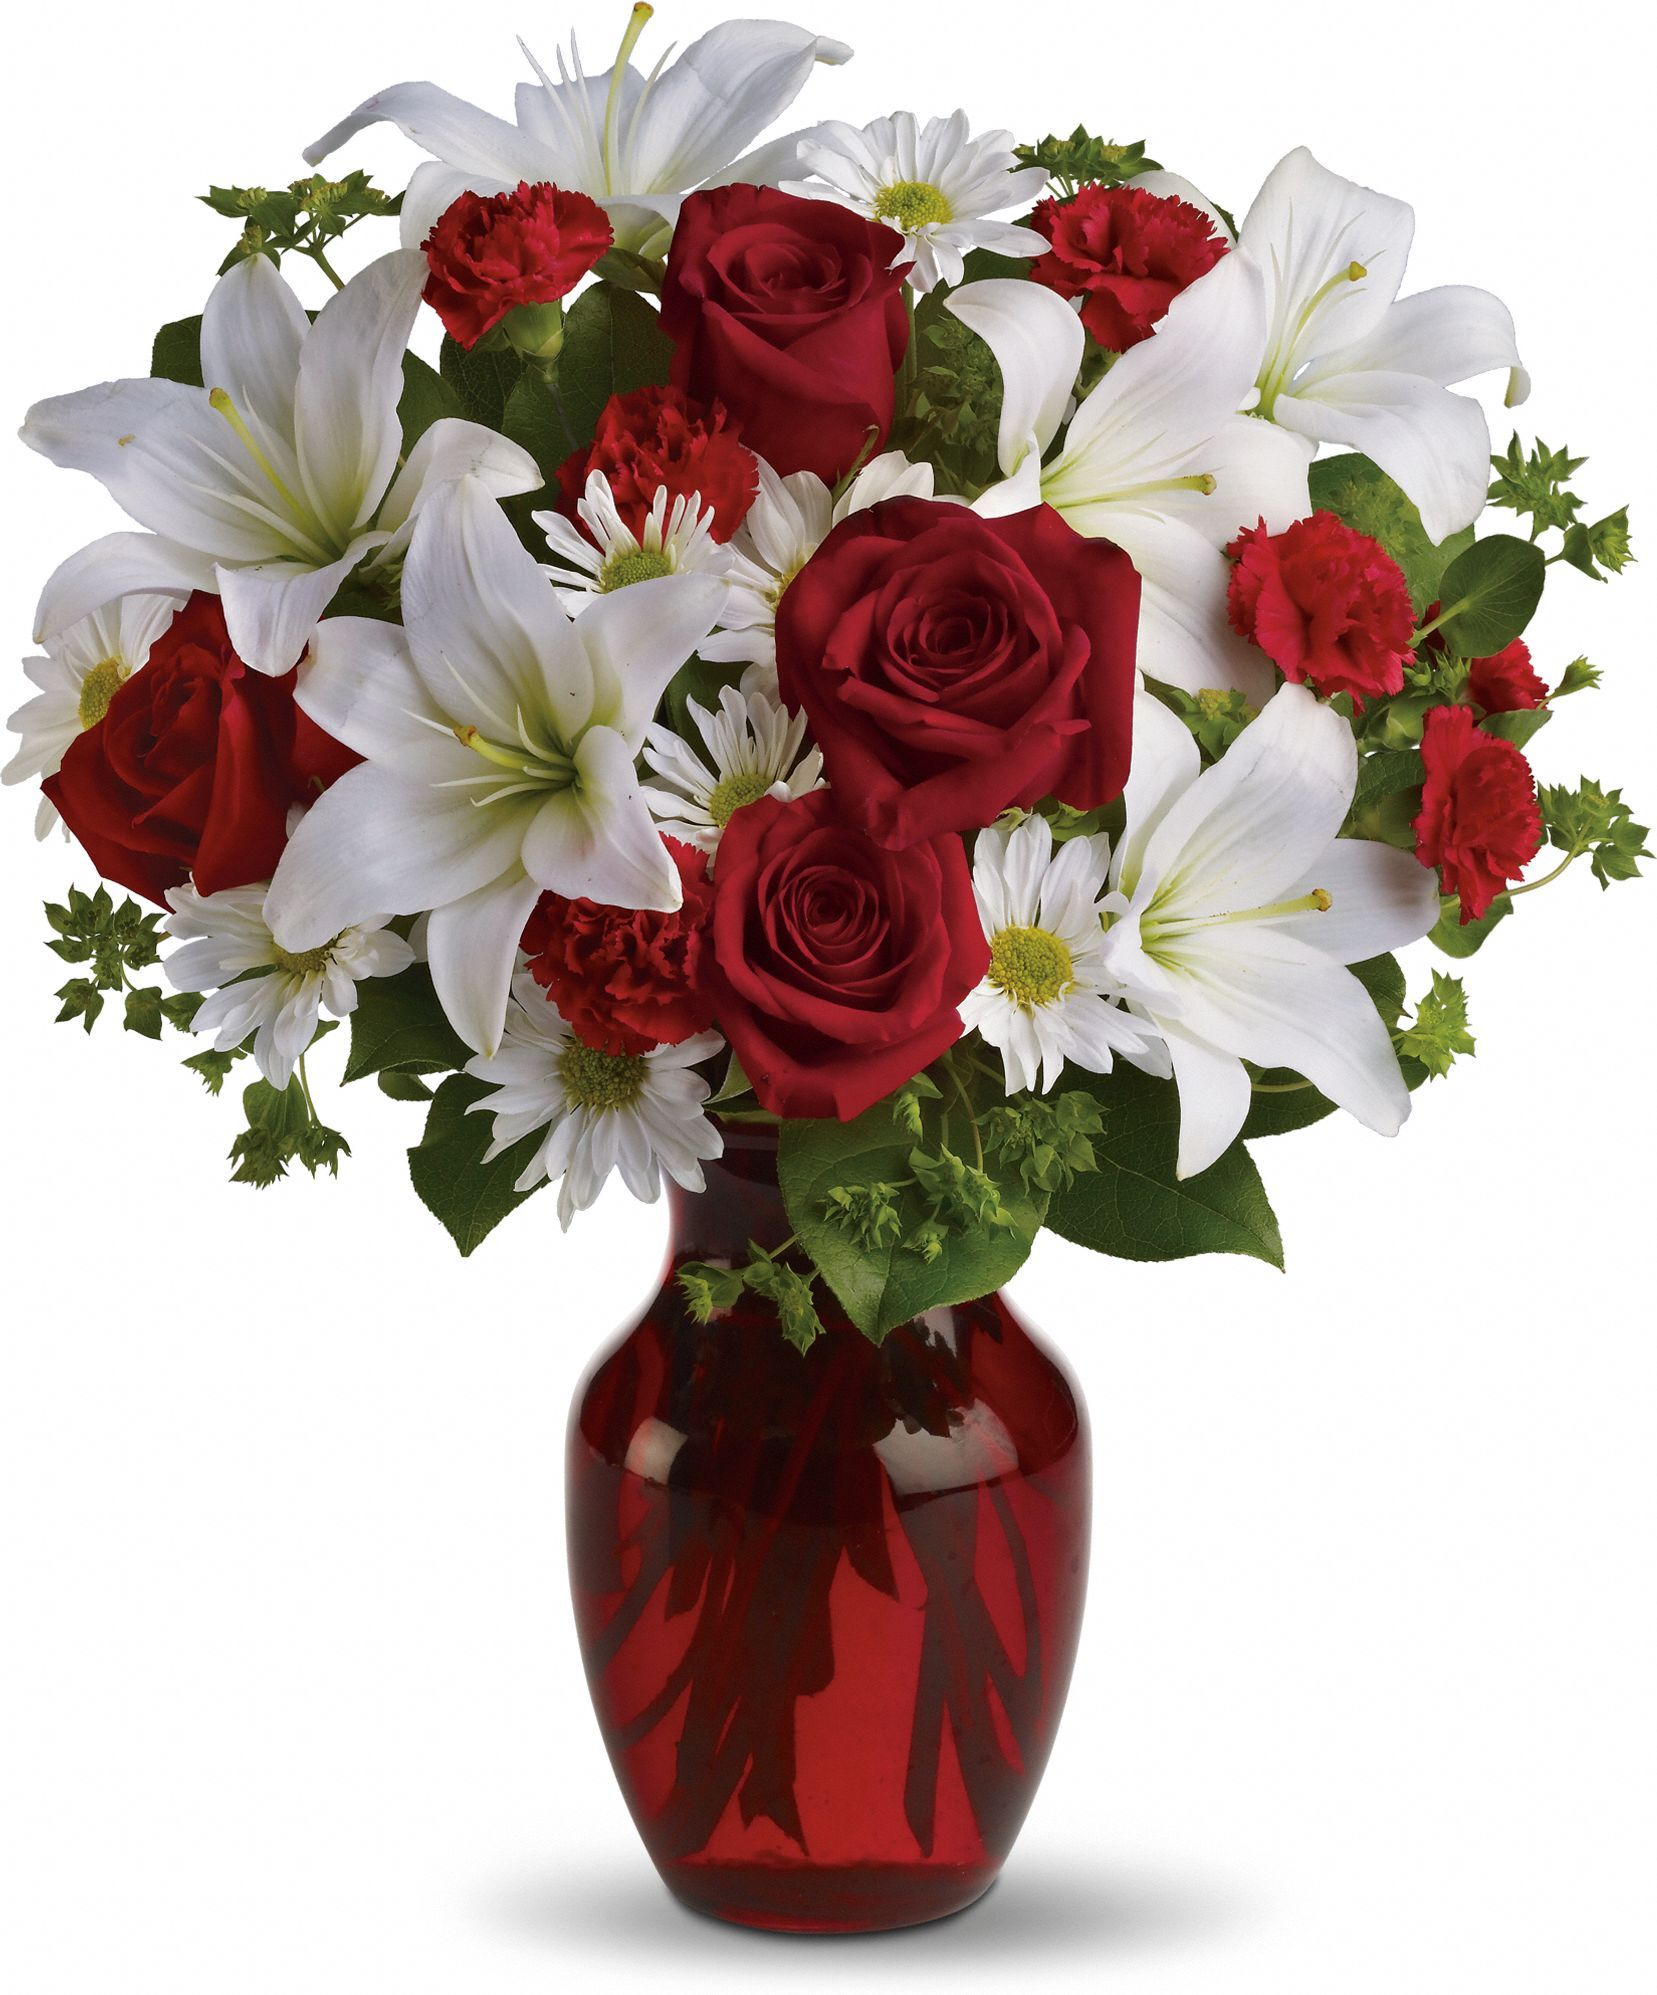 Be my love bouquet with red roses save 25 on this bouquet and many be my love bouquet with red roses save 25 on this bouquet and many others with coupon code tfmdayok1b2 offer expires 05142012 izmirmasajfo